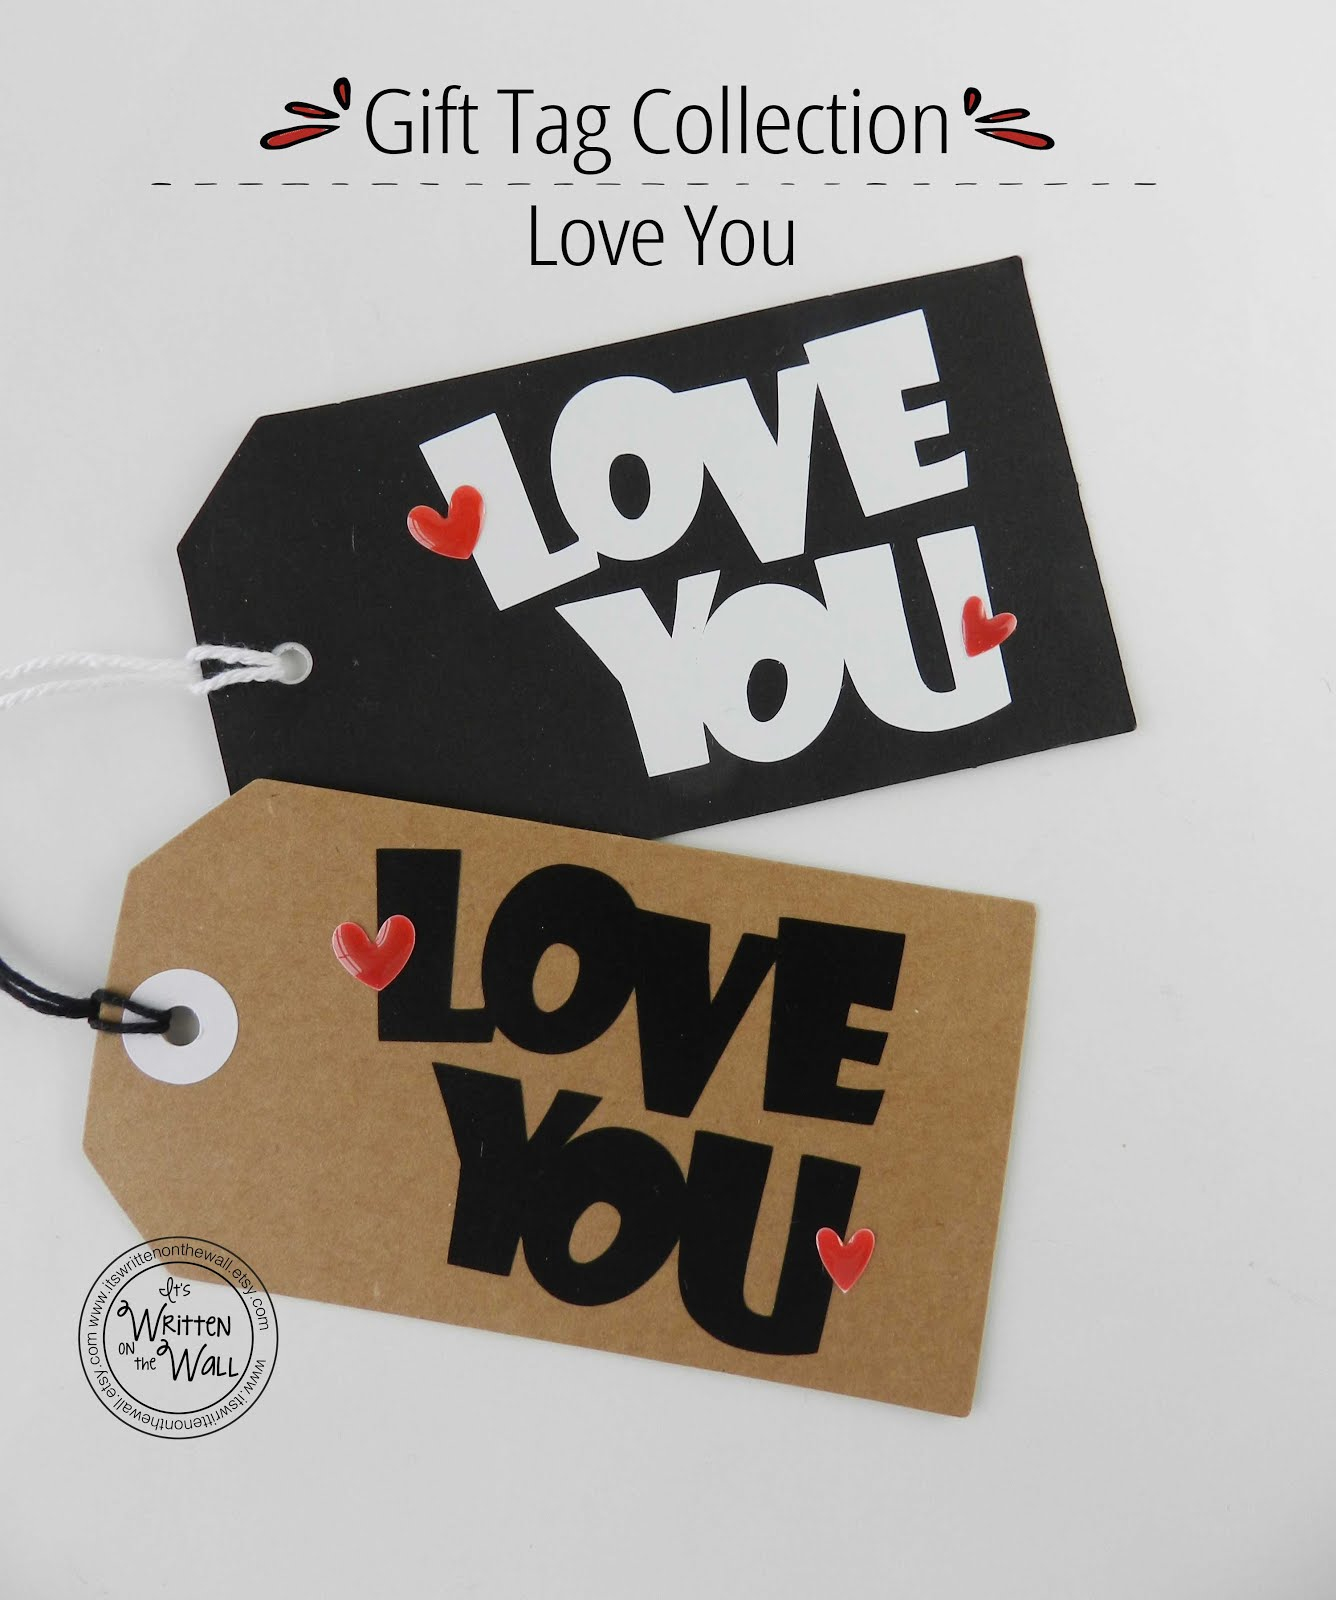 Special Handmade Tags for a Special Gift